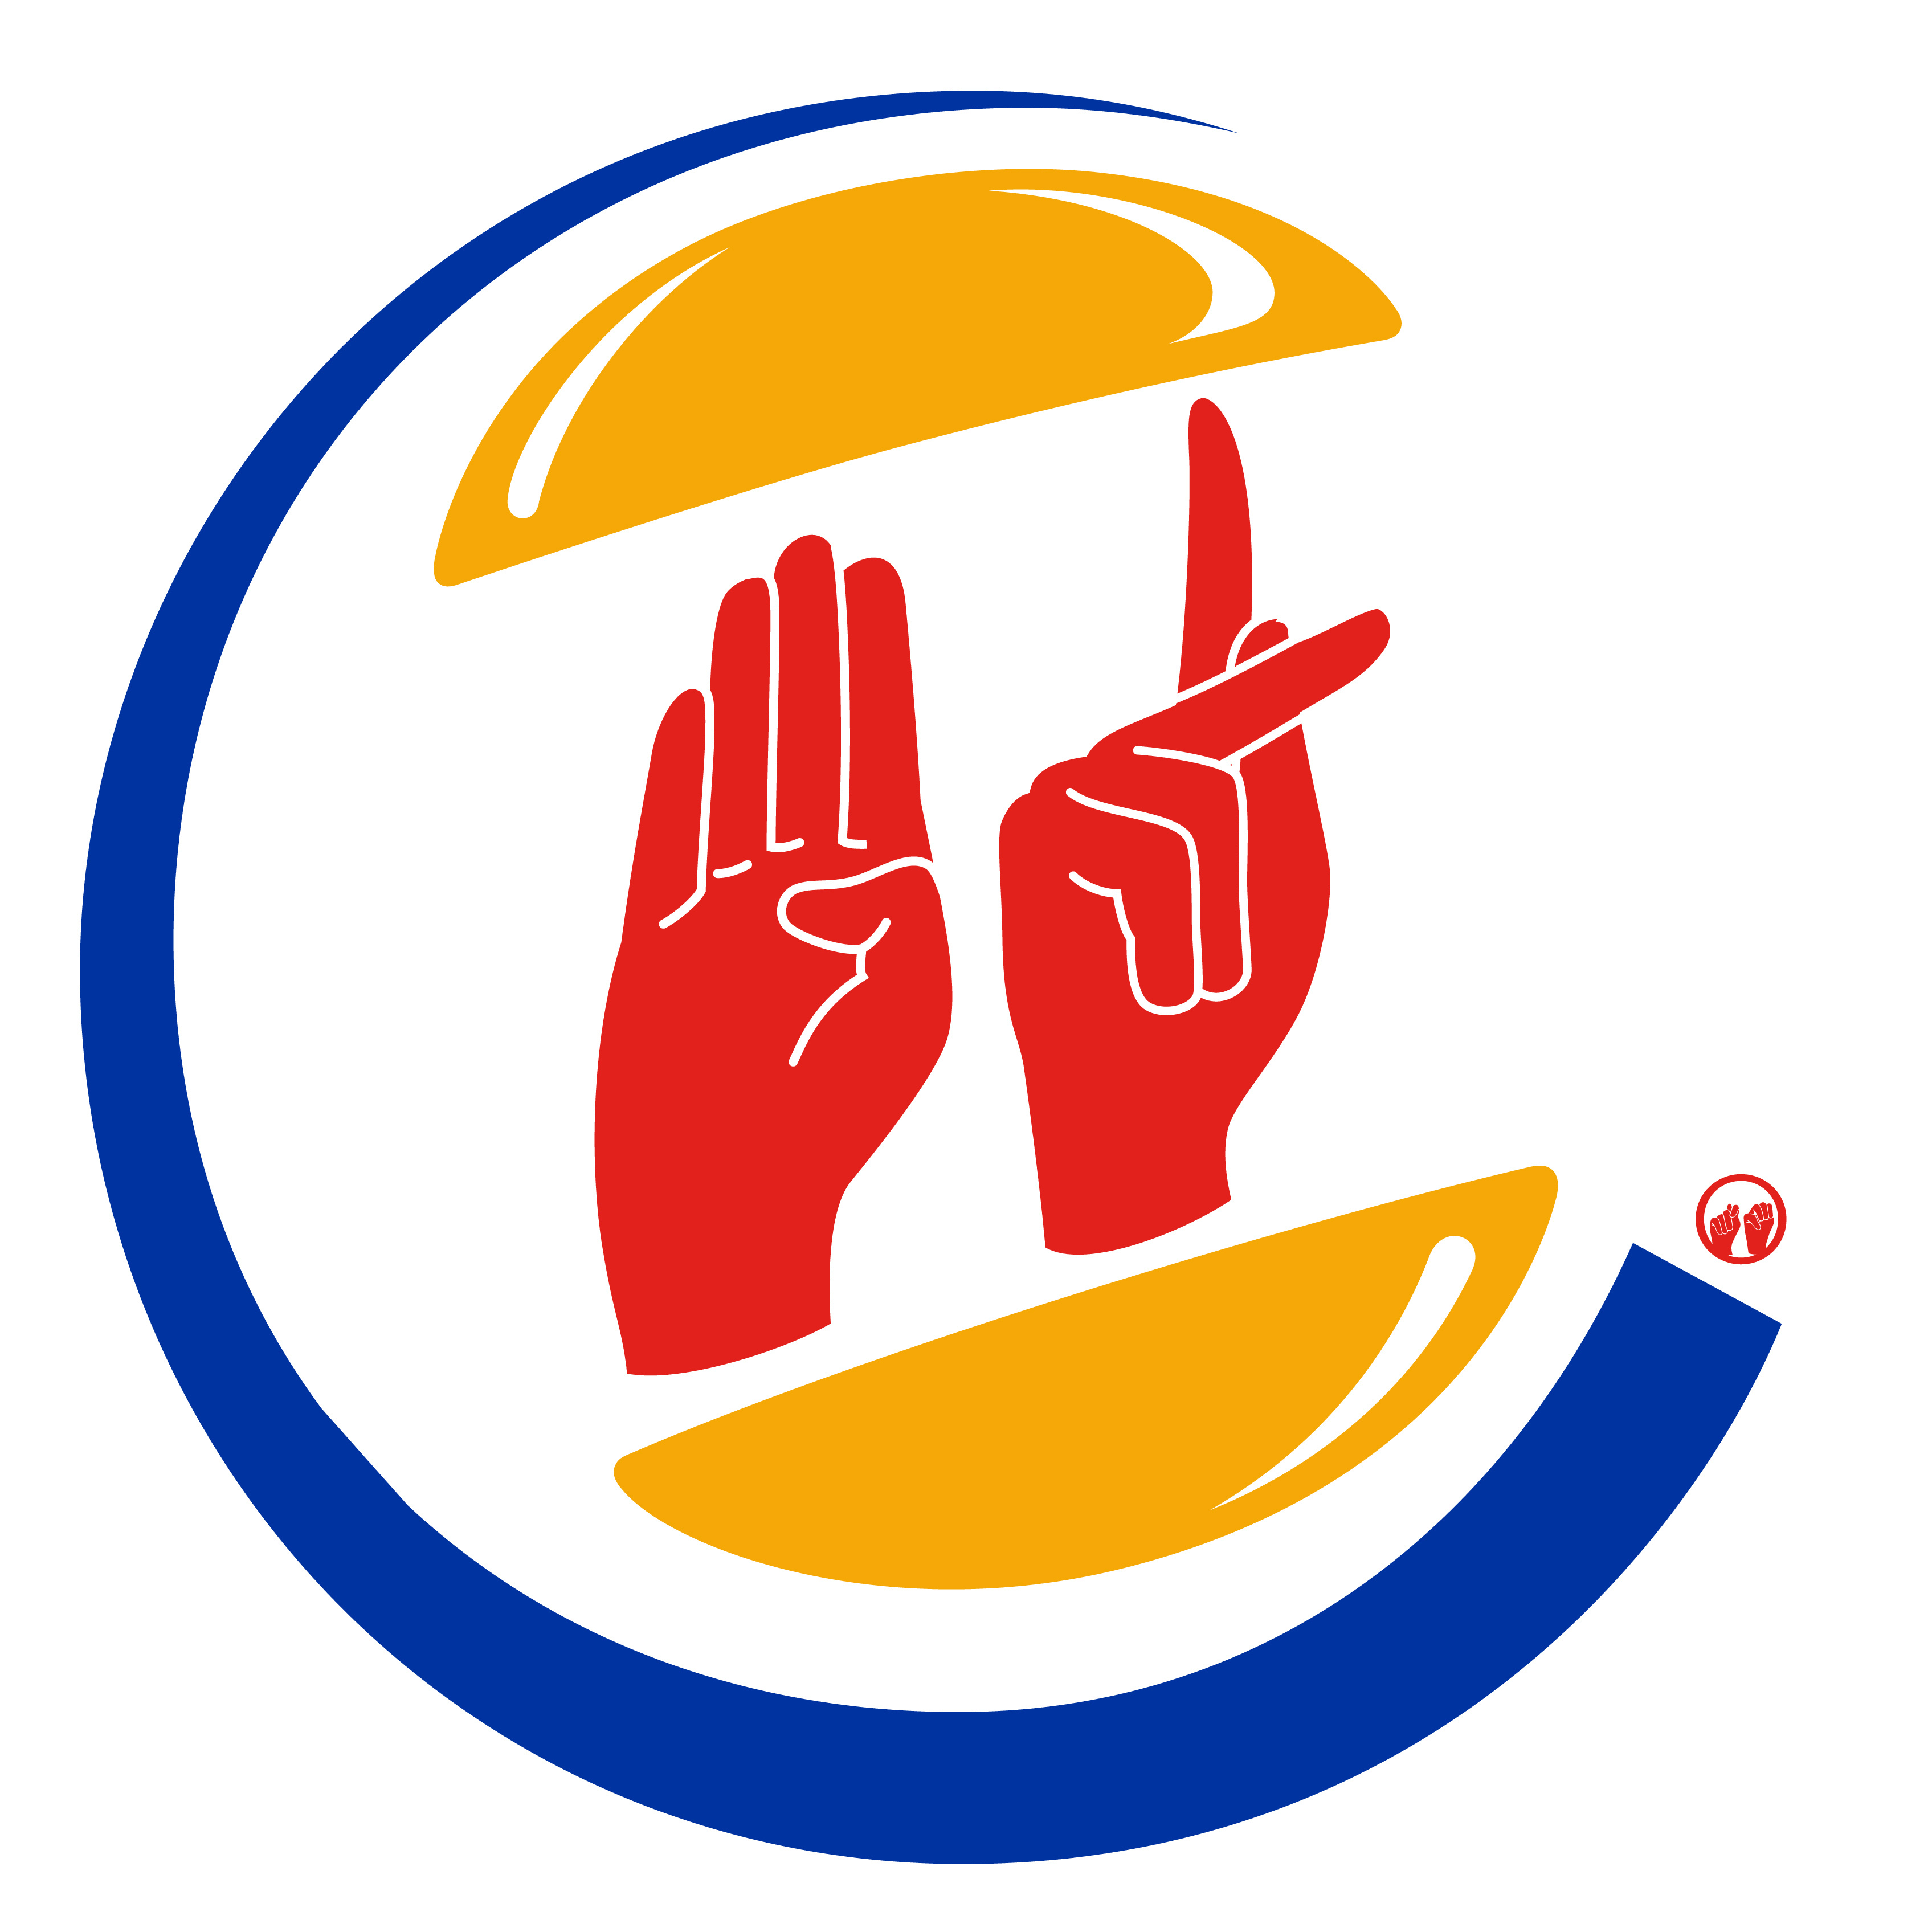 To Celebrate National American Sign Language Day, The